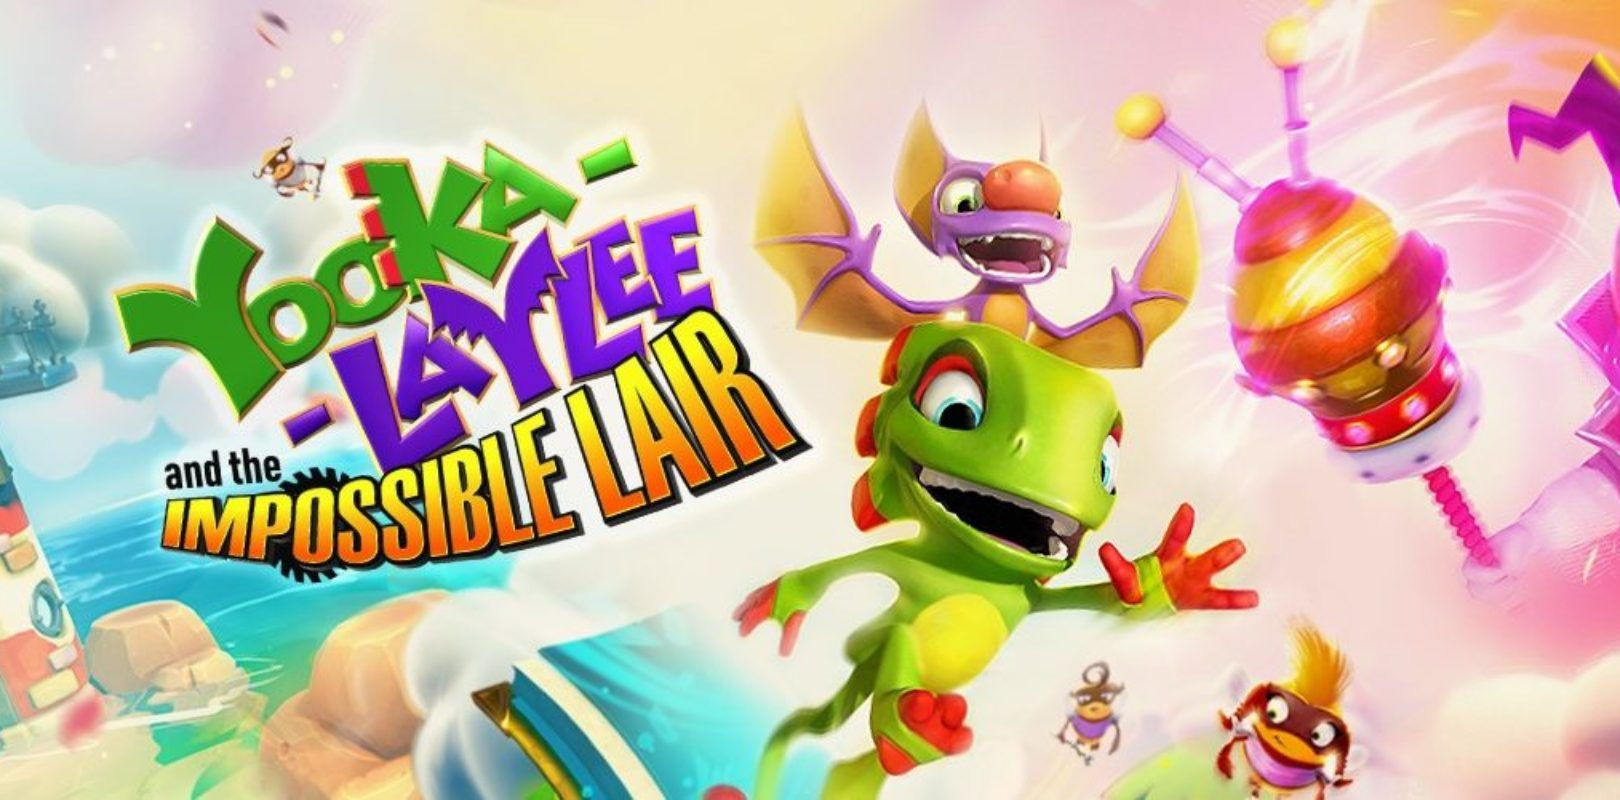 YOOKALAYLEE in 2020 Free games, Donkey kong country, Games